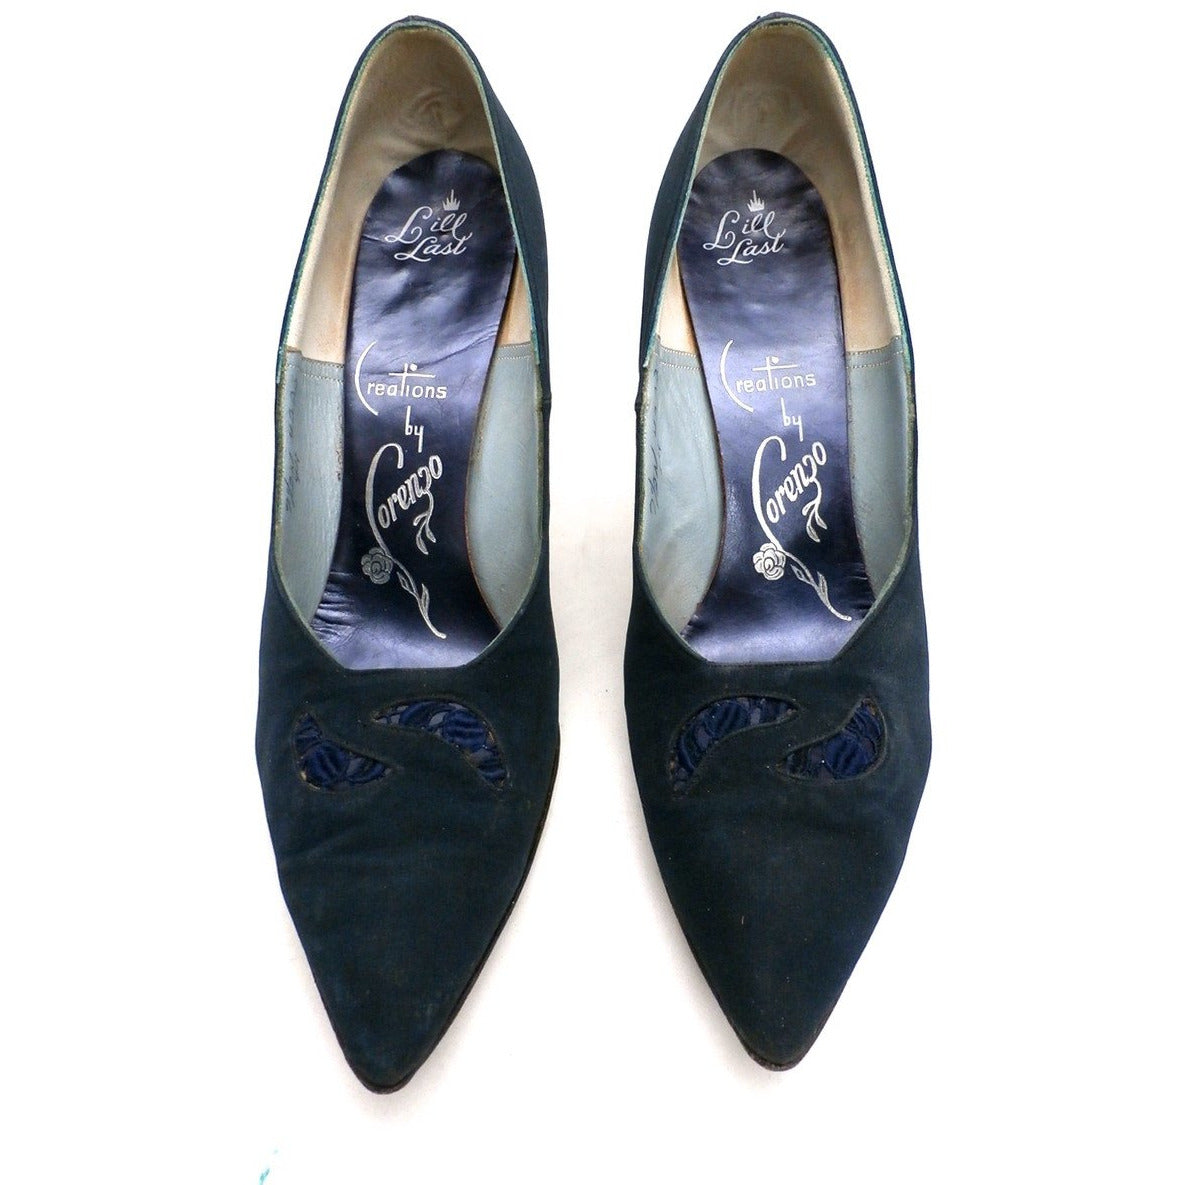 Vintage Midnight Blue Silk Pumps Lorenzo 1950S 7.5N - The Best Vintage Clothing  - 1